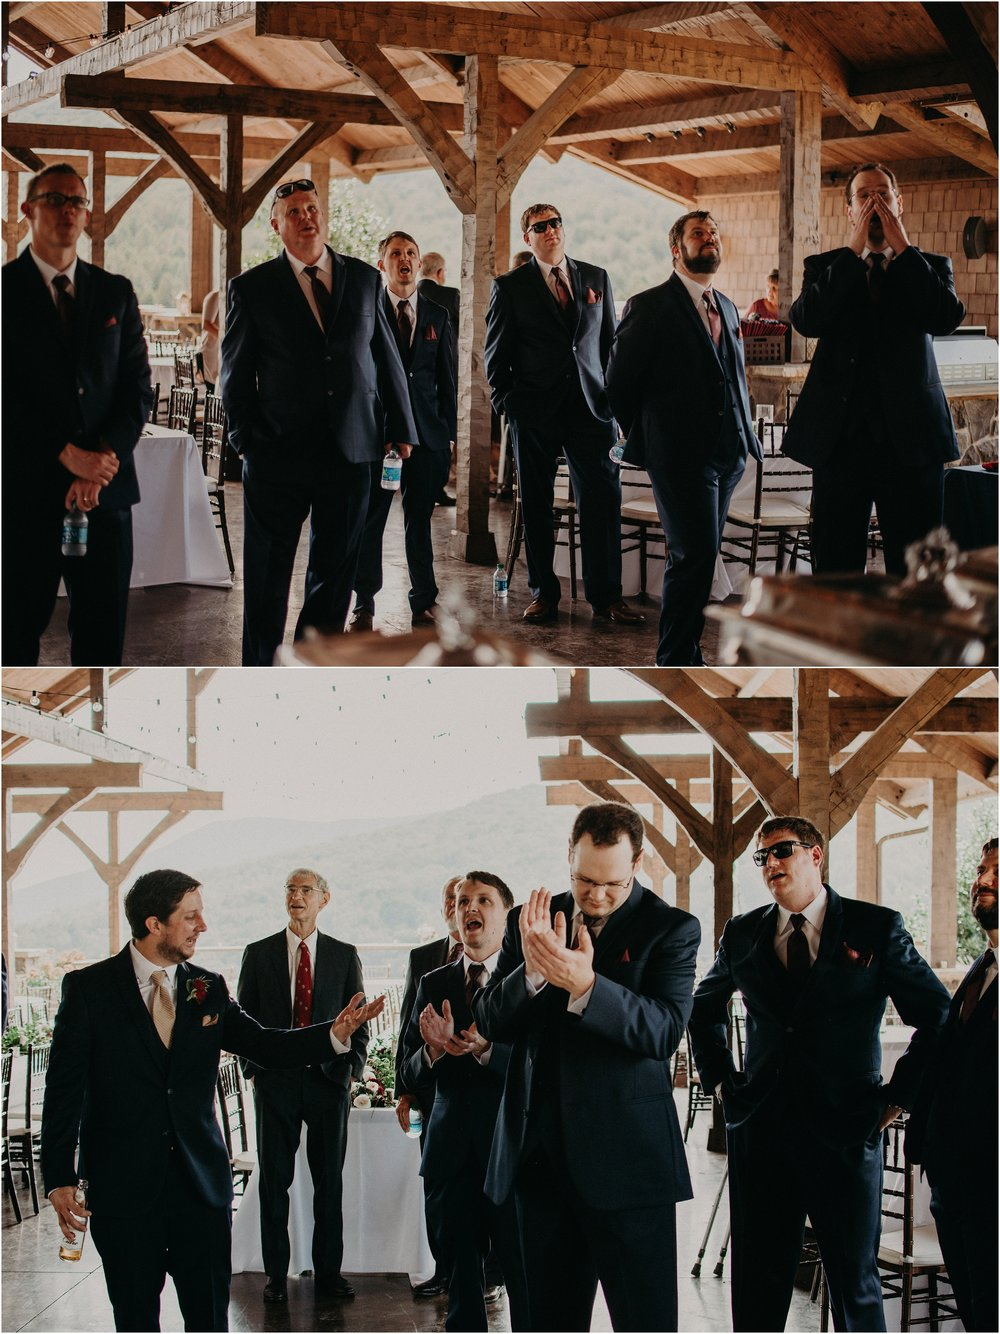 Groomsmen watching football game before wedding ceremony